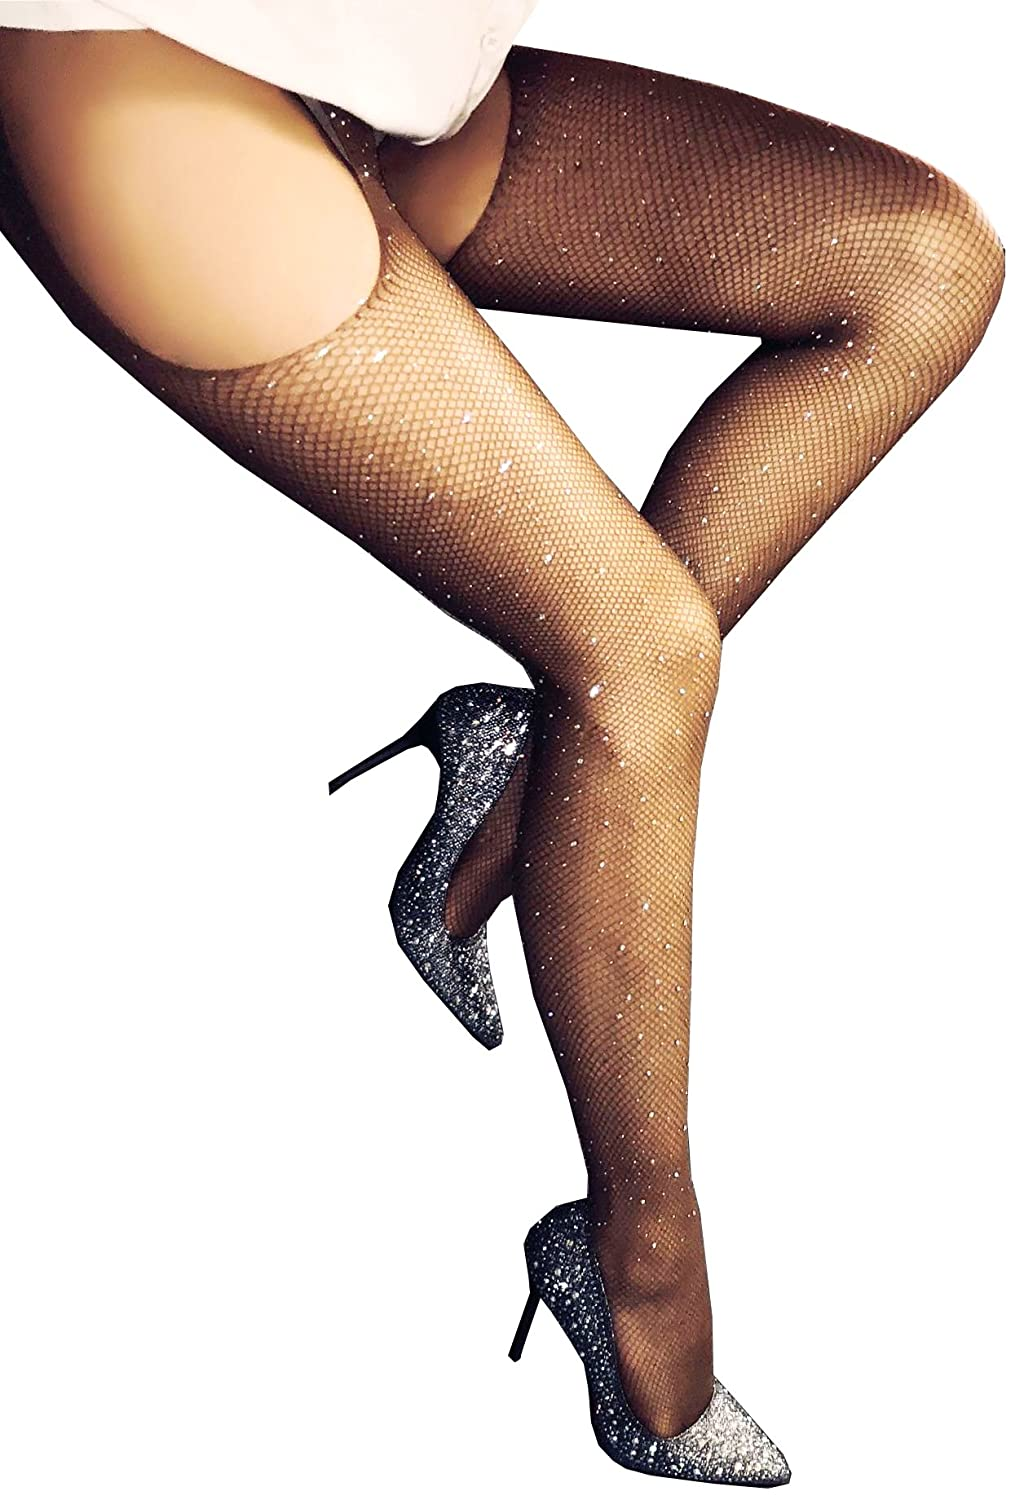 c92c13e3441 Feature  Sexy fishnet stockings with rhinestones for women   ladies